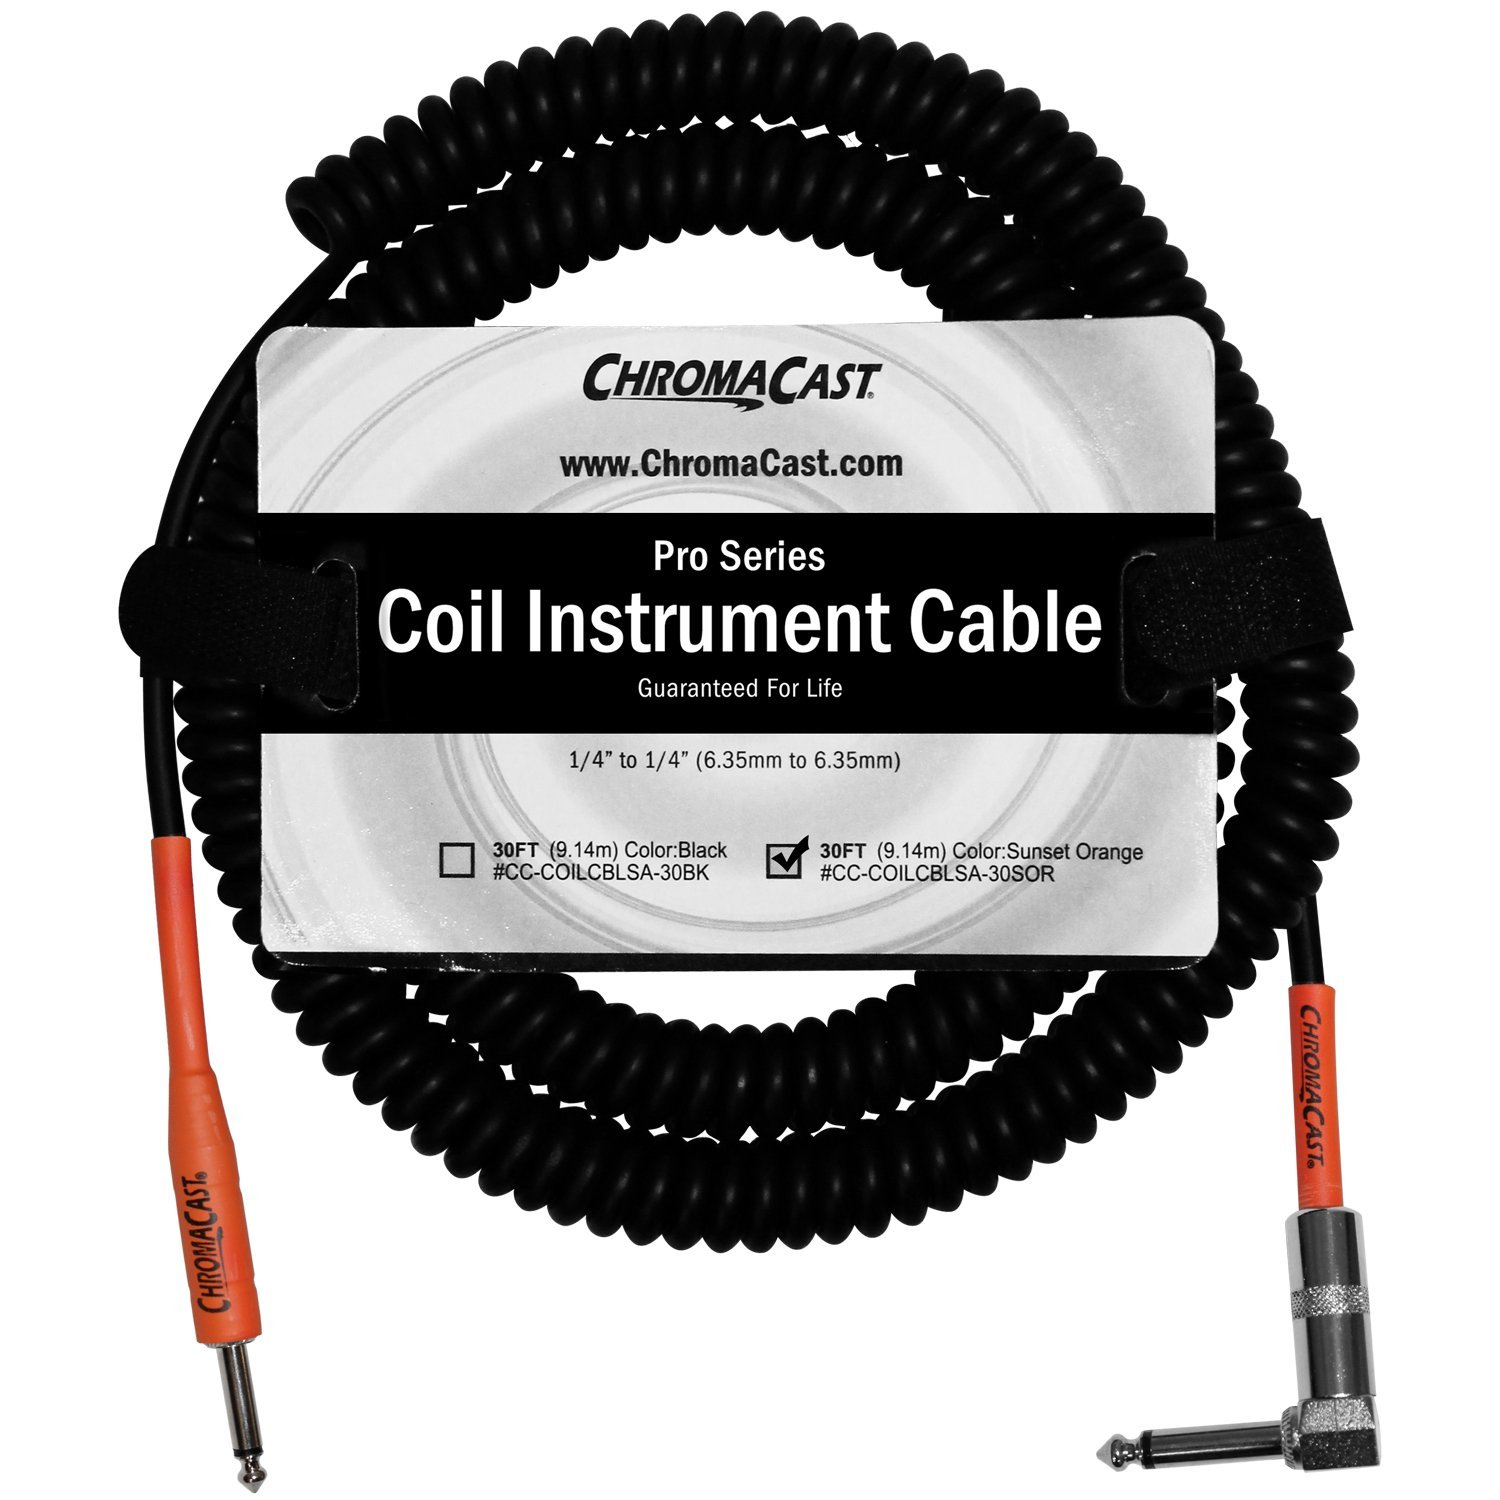 "ChromaCast Pro Series Coil Instrument Cable 30 Feet, Orange, 1 4"" Straight- 1... by ChromaCast"